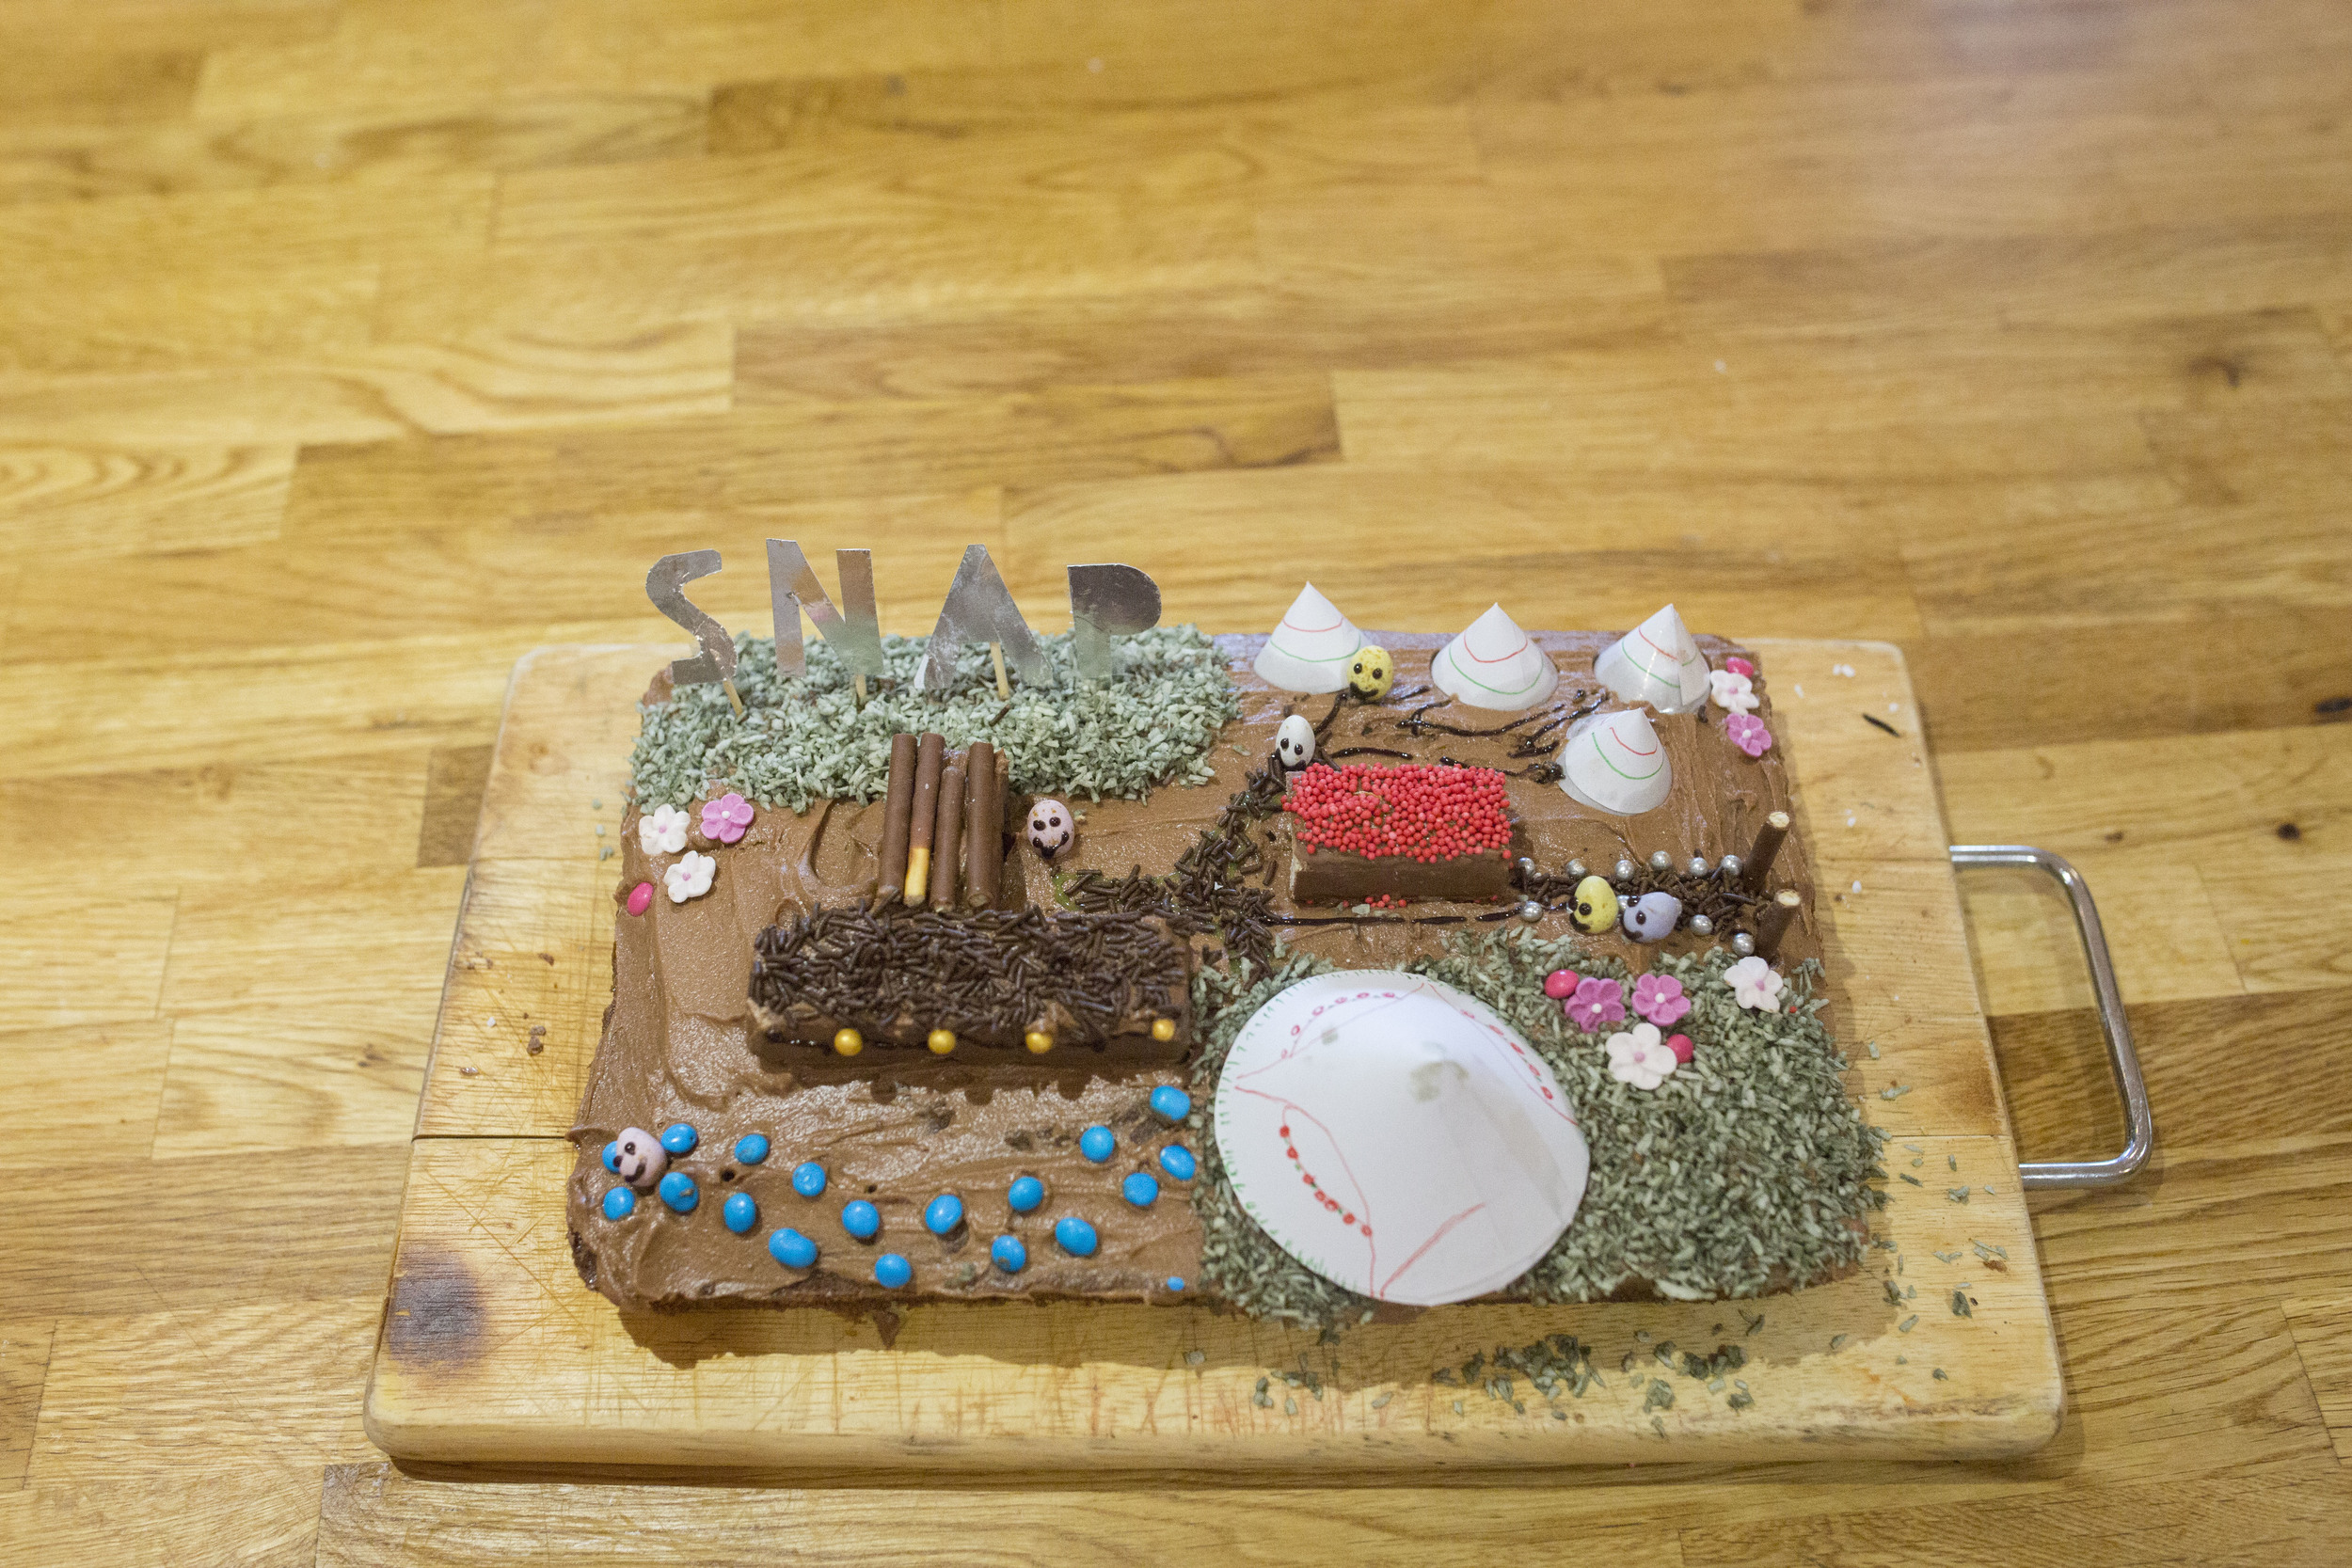 Snap-Competition-Cake_7.jpg